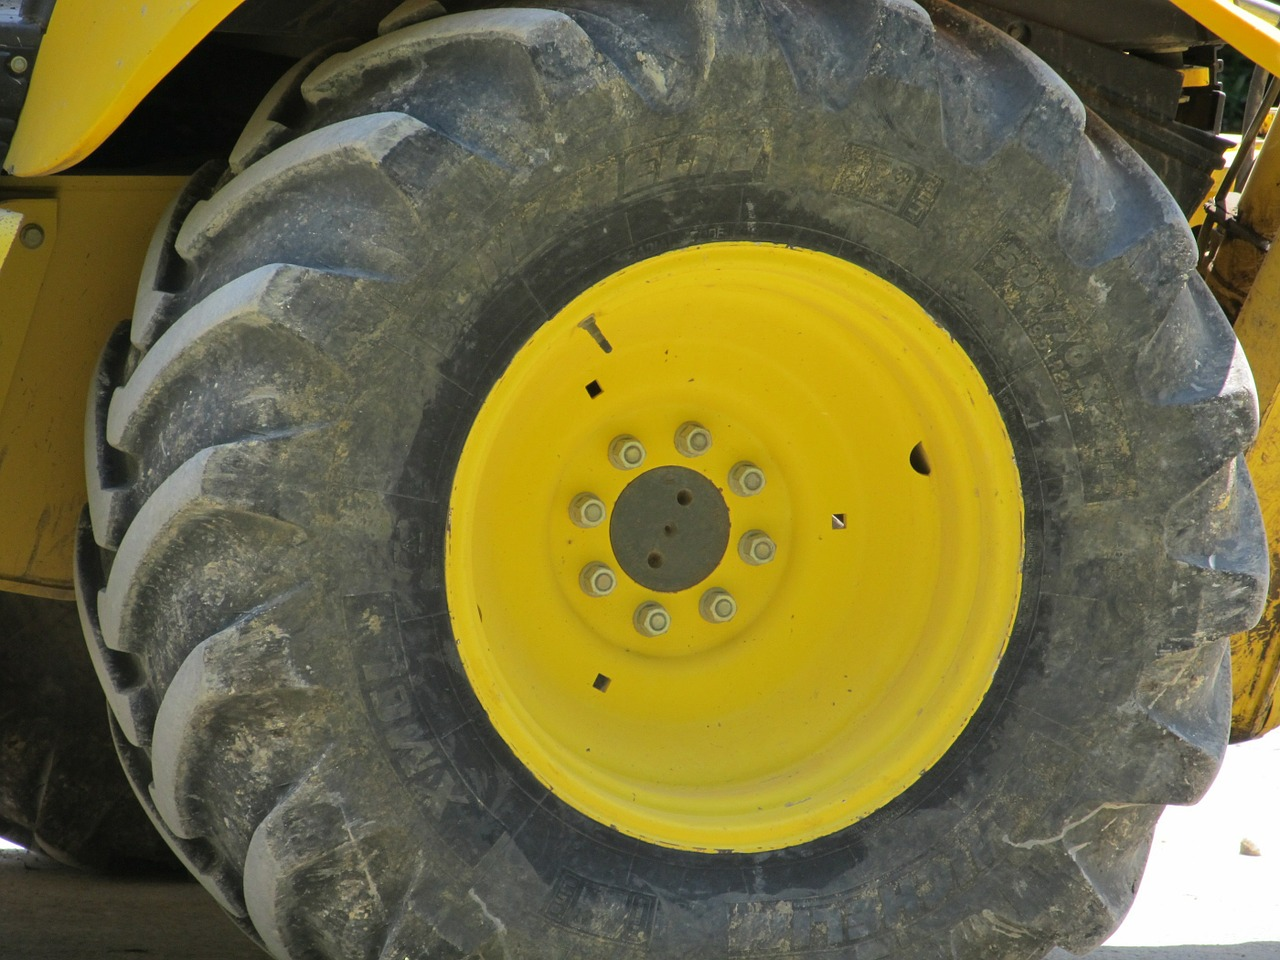 heavy-equipment-wheel-413912_1280